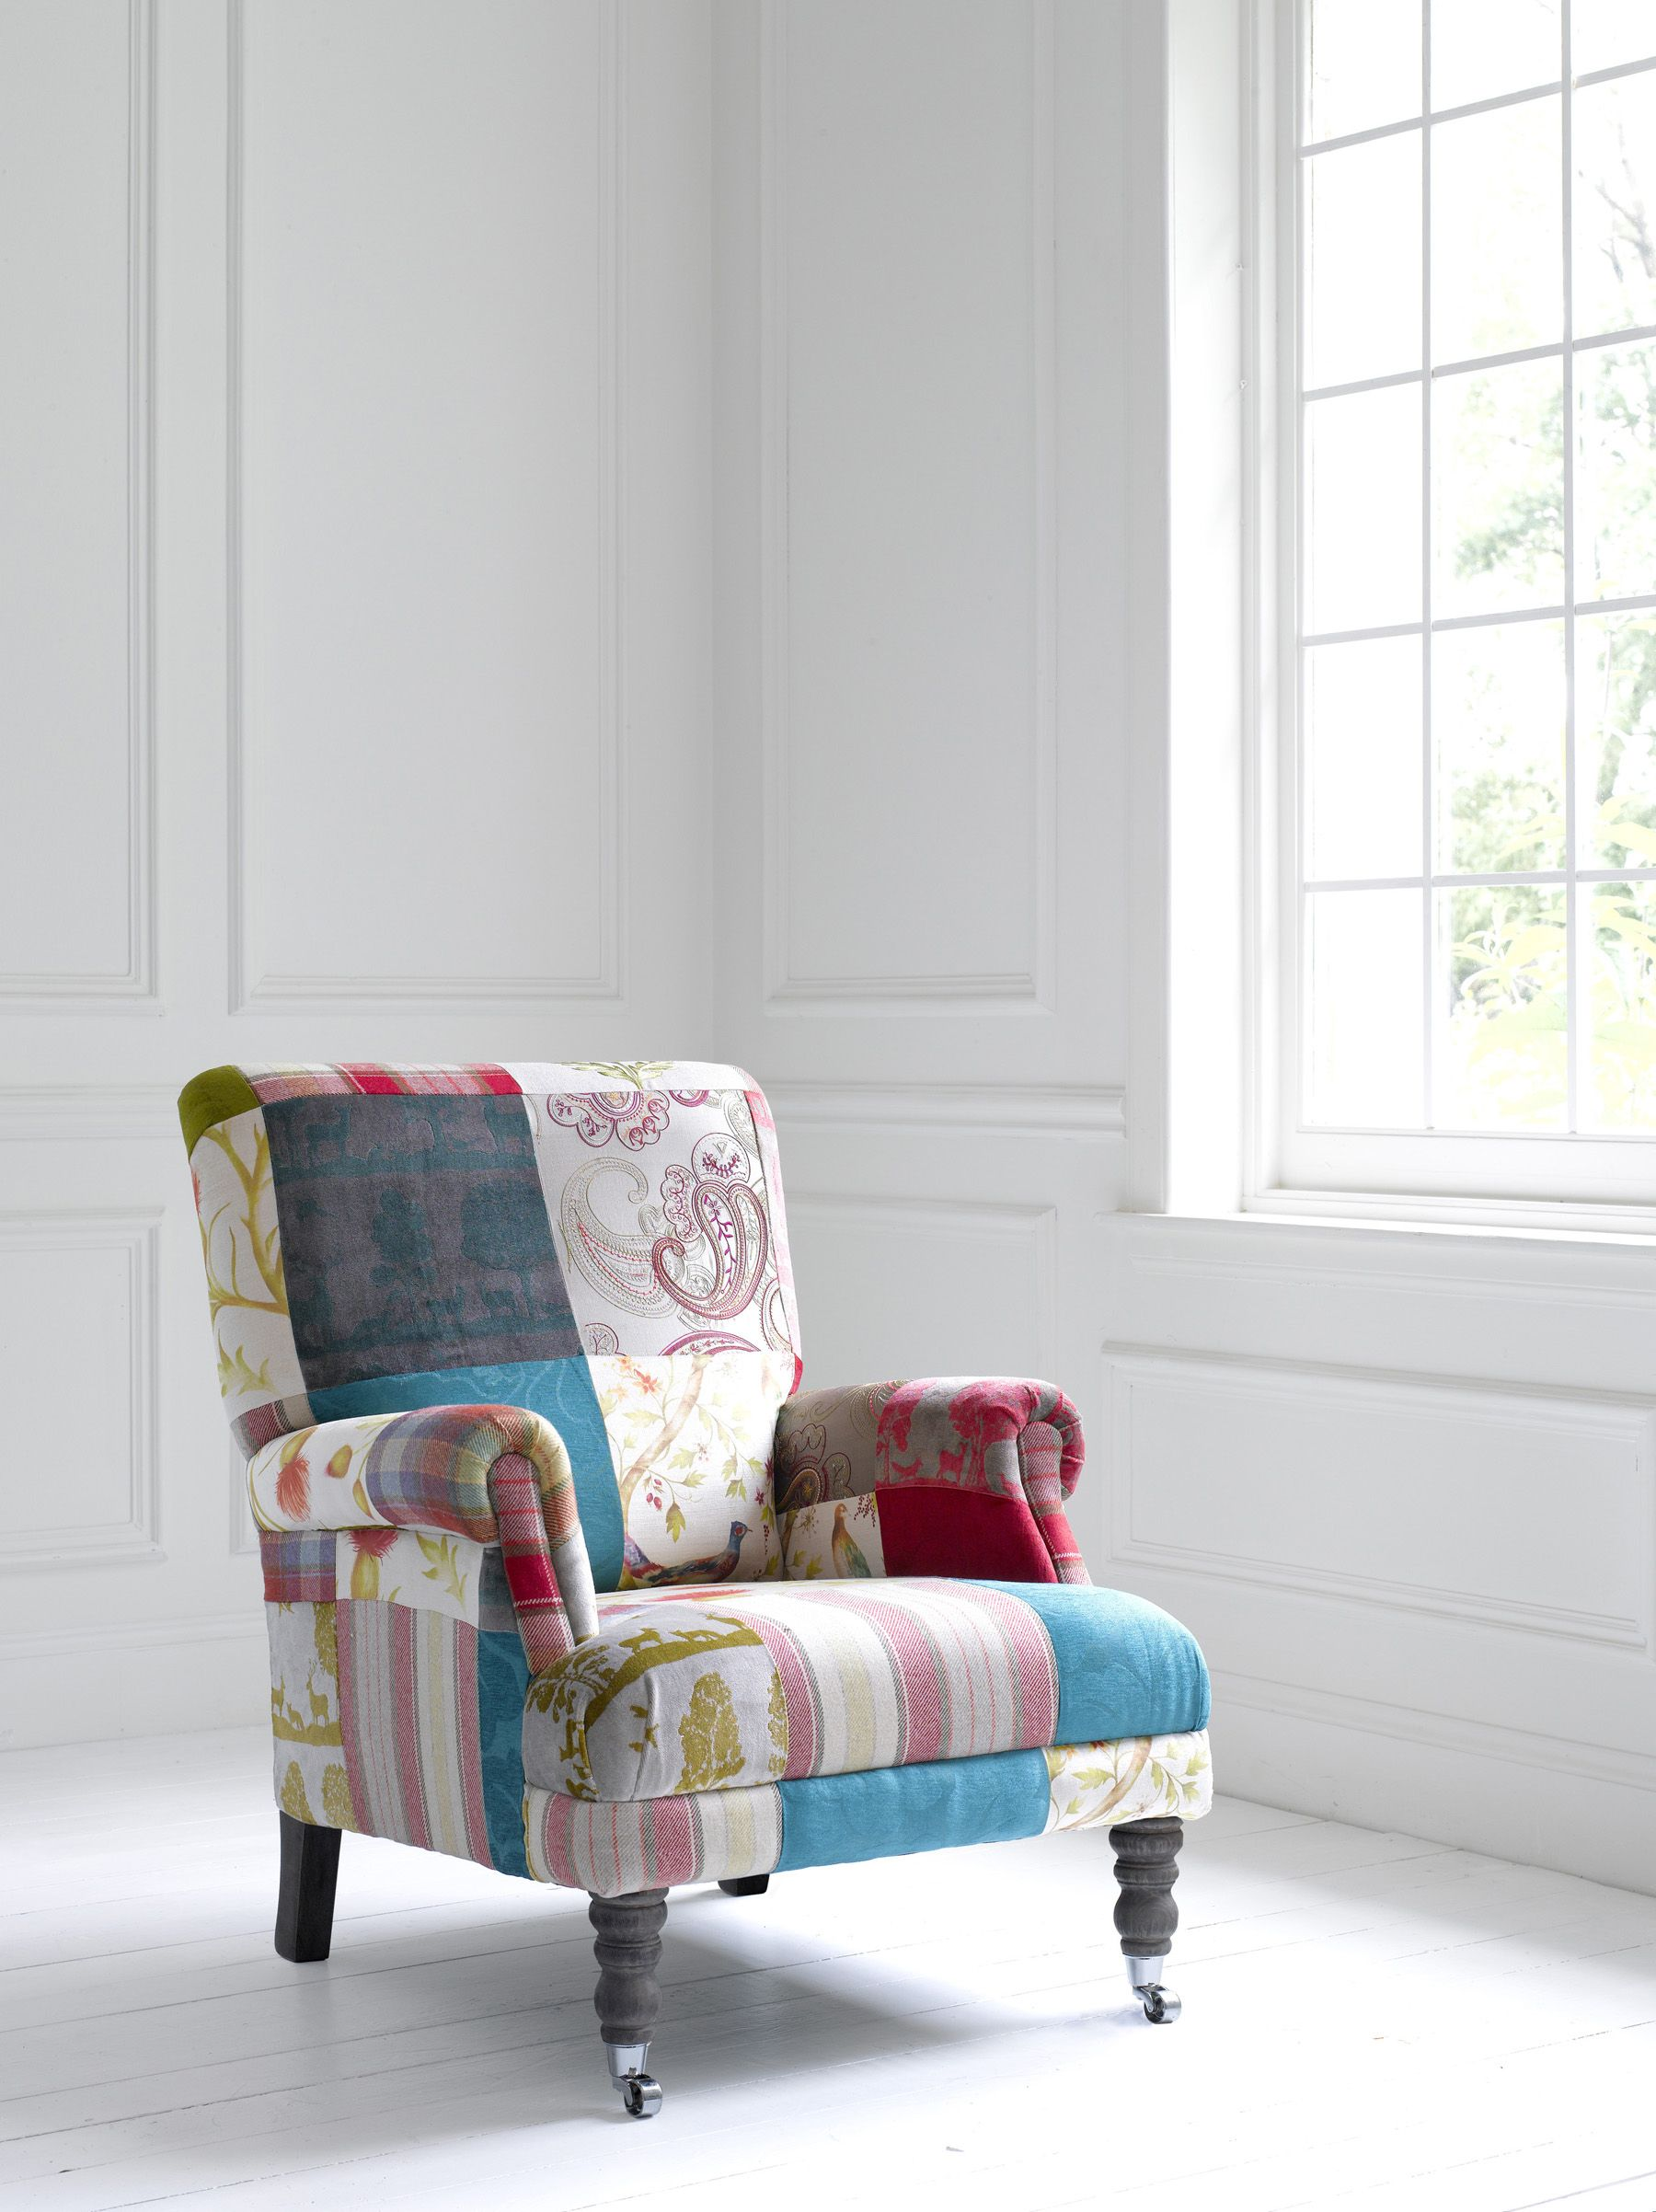 Striking Patchwork Chair 3 Http Www Justfabrics Co Uk Furniture